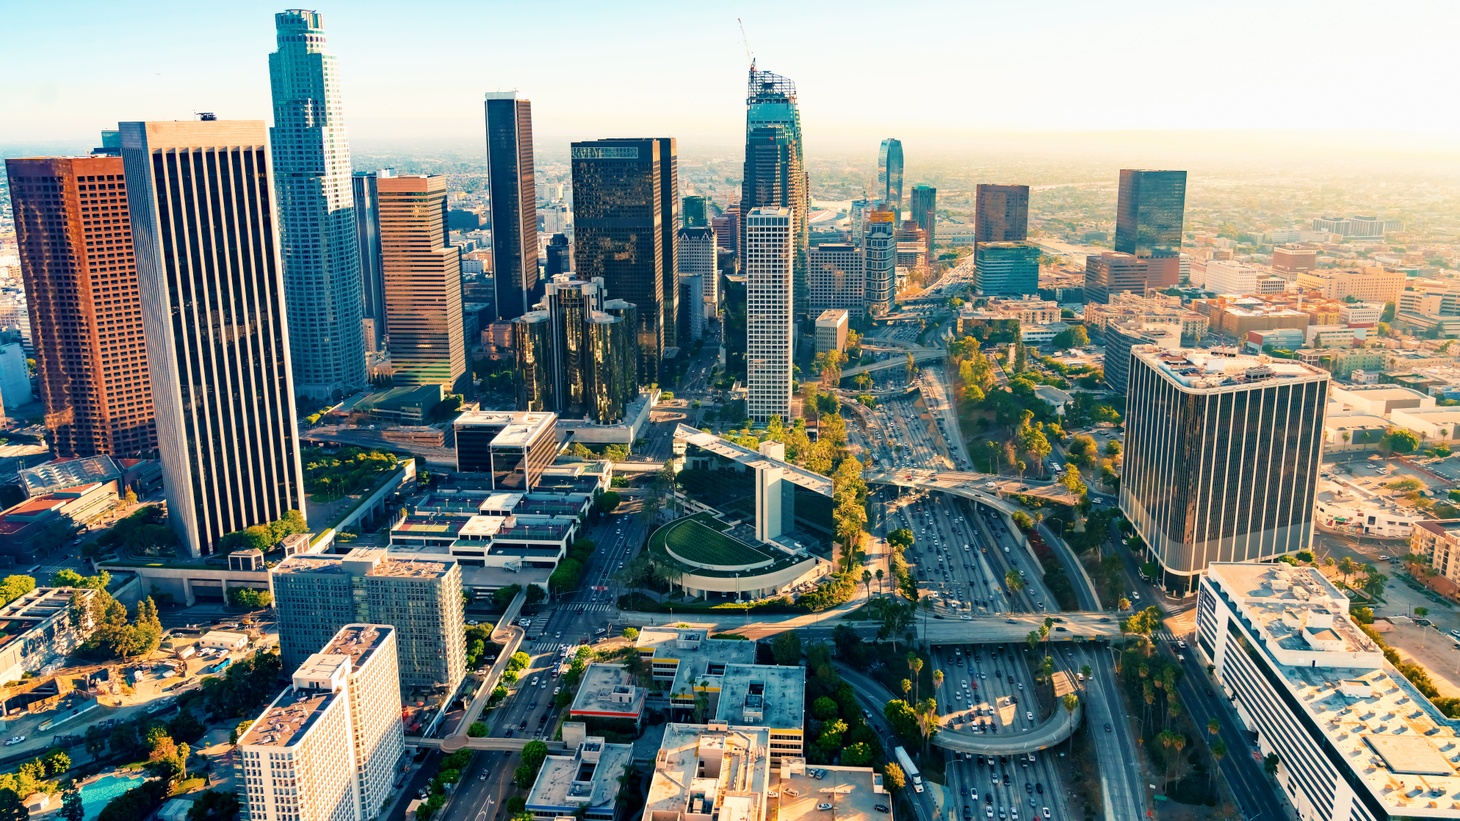 An estimated 75,000 people call downtown LA home, nearly triple the number compared to 20 years ago, but rising rents and the pandemic pushed many of them out.